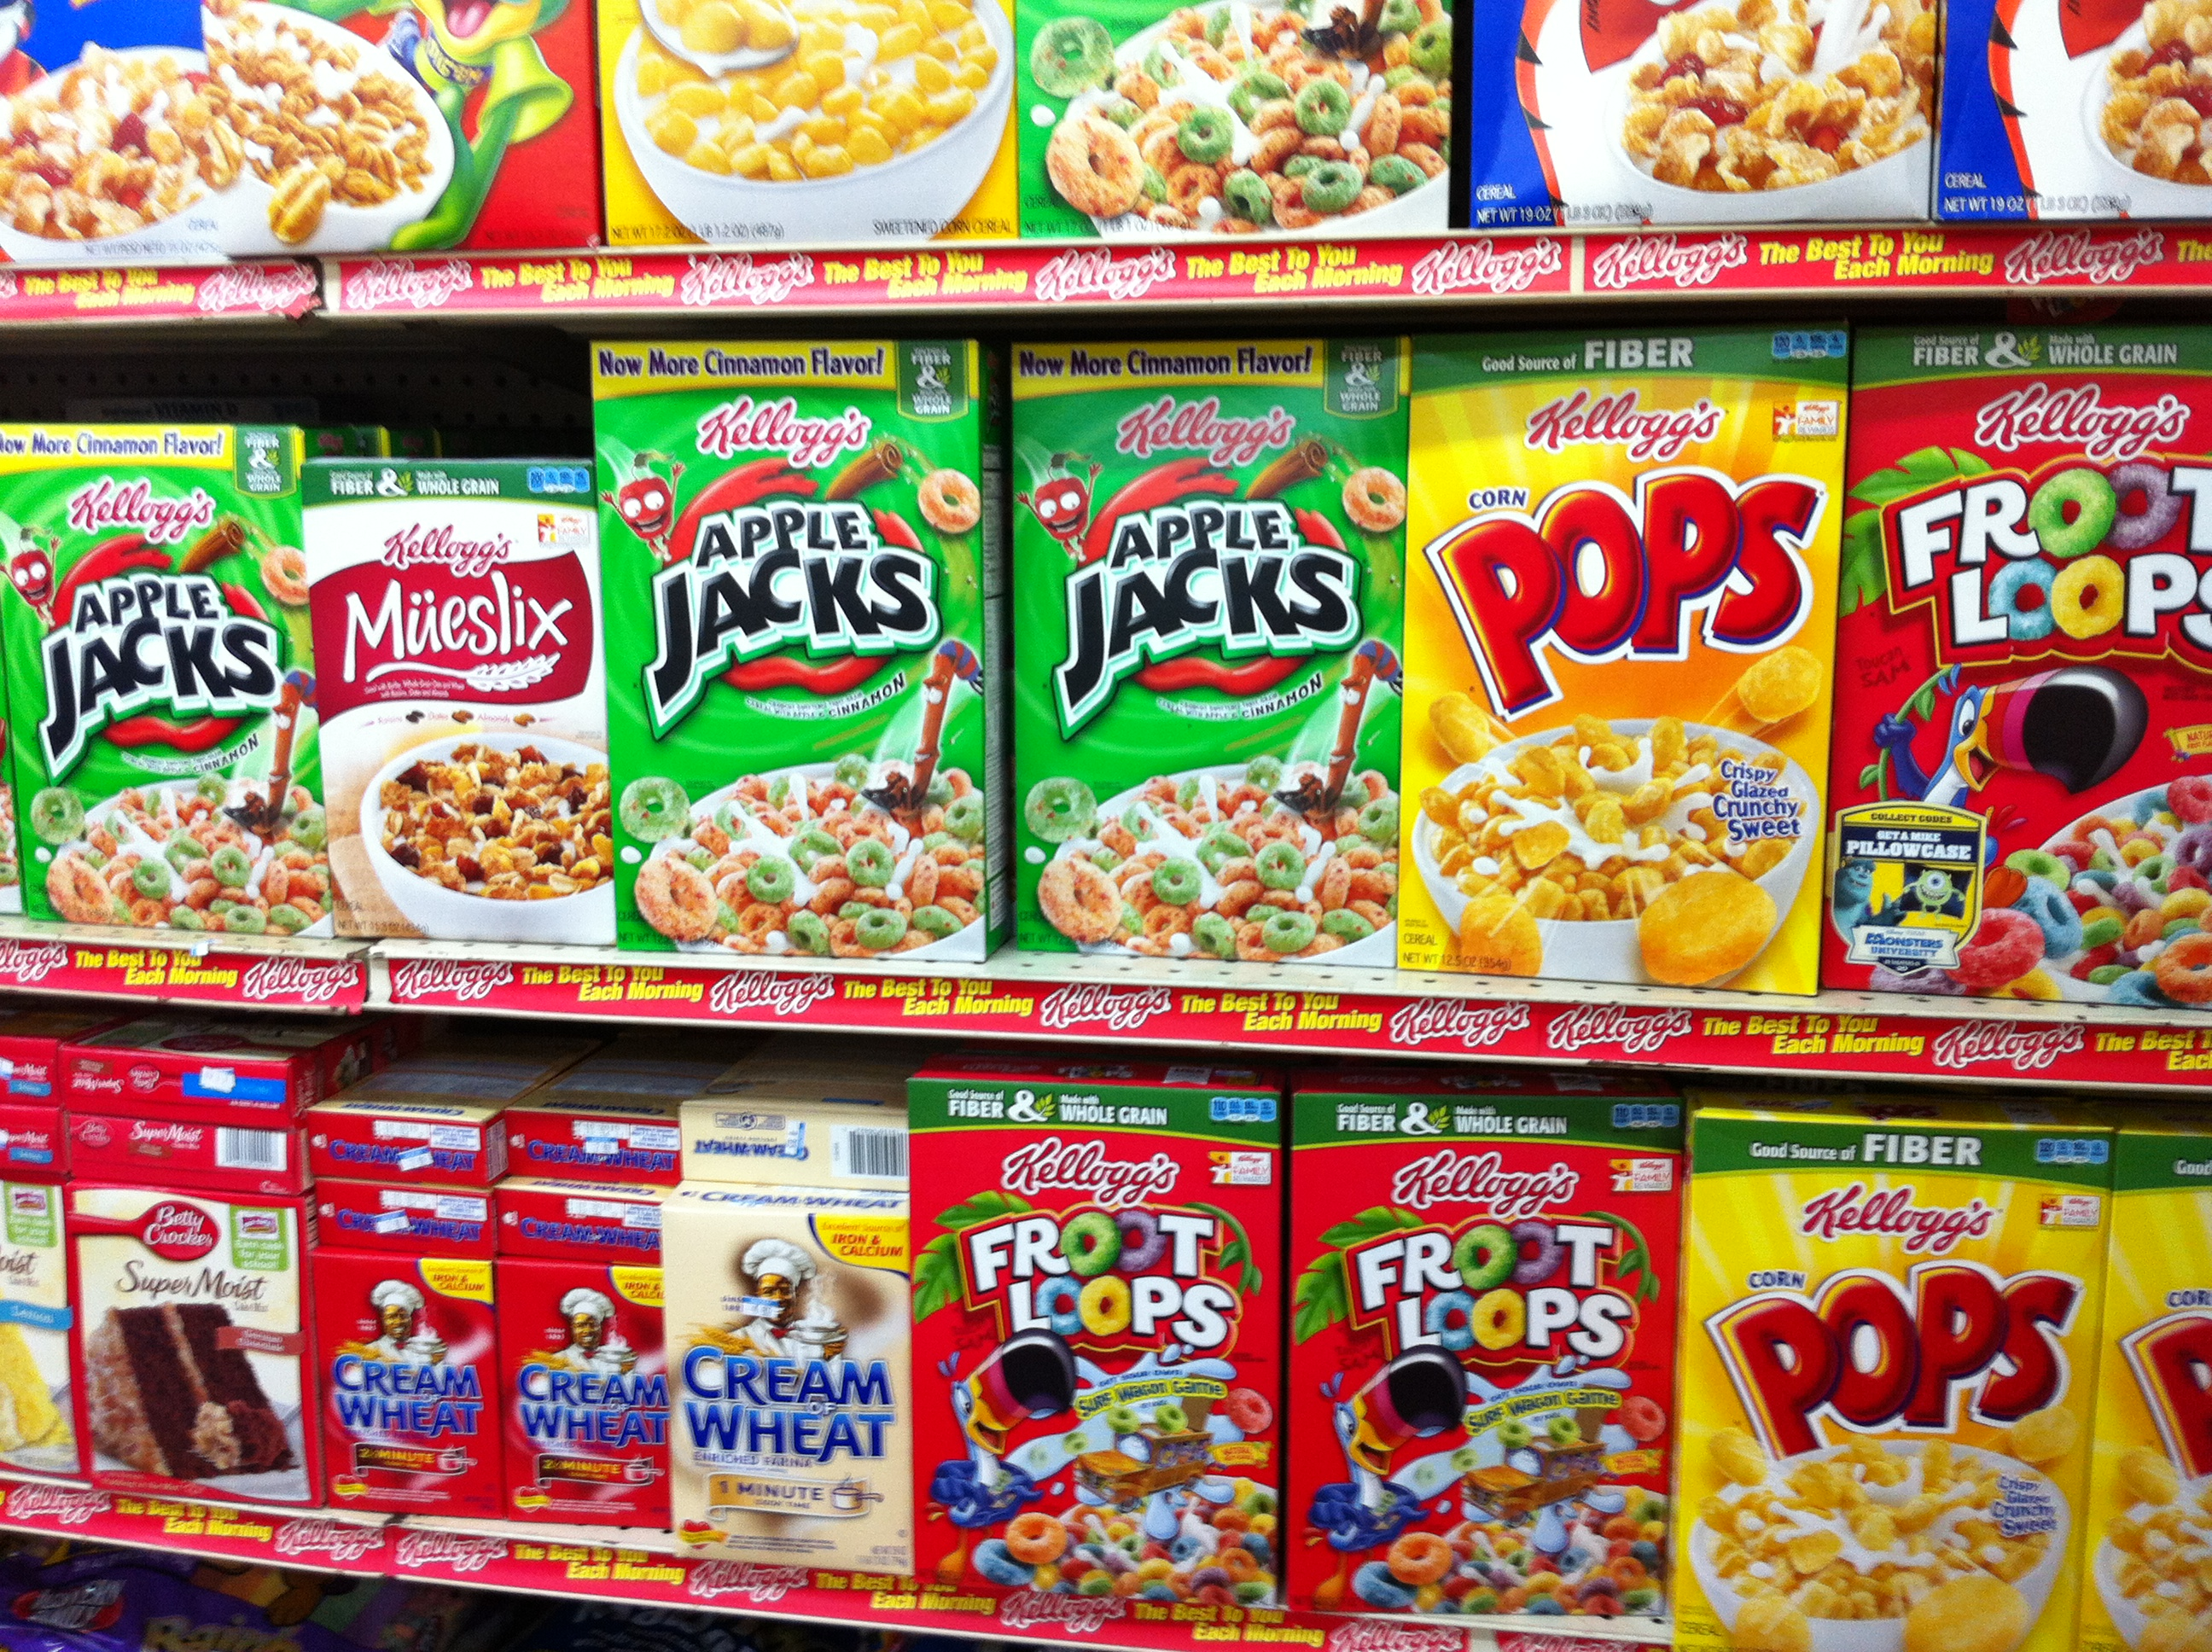 Unhealthy cereals galore with claims about being rich sources of vitamins or minerals because they have been fortified